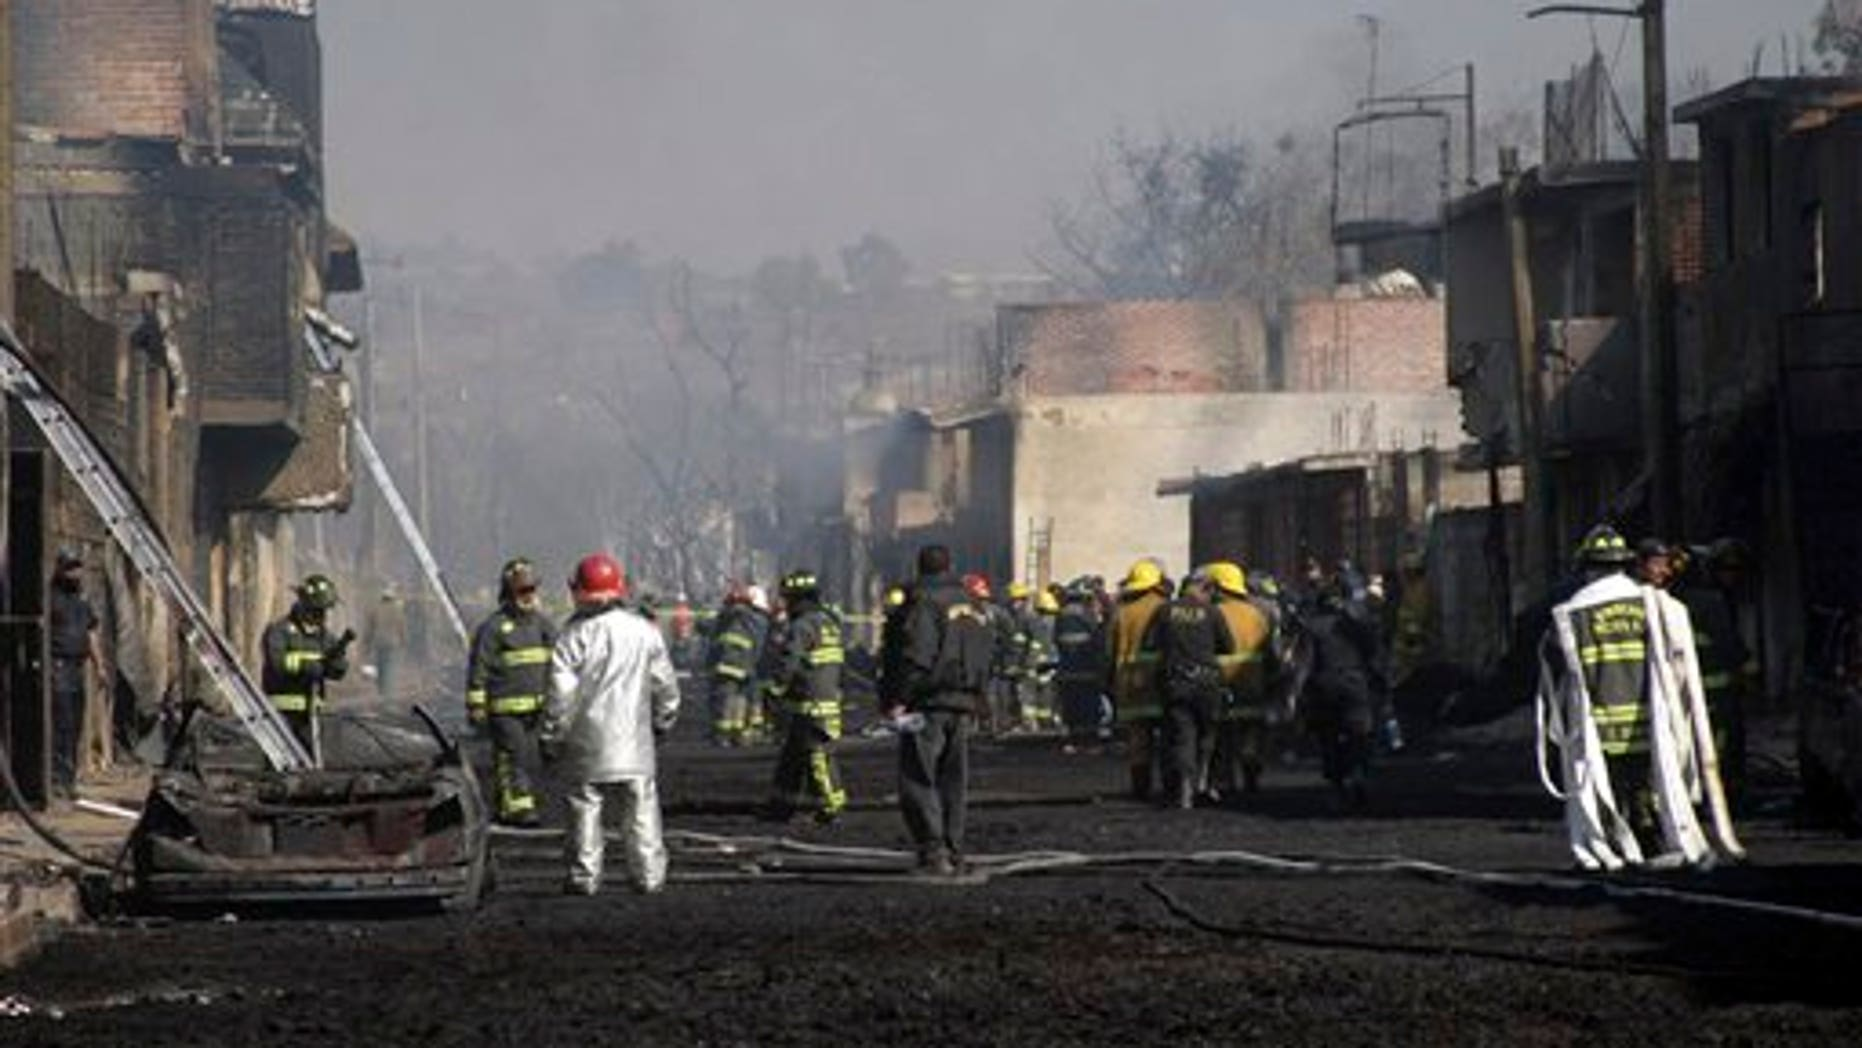 Emergency workers and firefighters work at the scene after a pipeline explosion in San Martin Texmelucan, Mexico, Sunday, Dec. 19, 2010. A pipeline operated by Mexico's state-owned oil company Petroleos Mexicanos, or PEMEX, exploded when thieves were attempting to steal either gas or oil, killing at least 27 people, authorities said. (AP Photo)